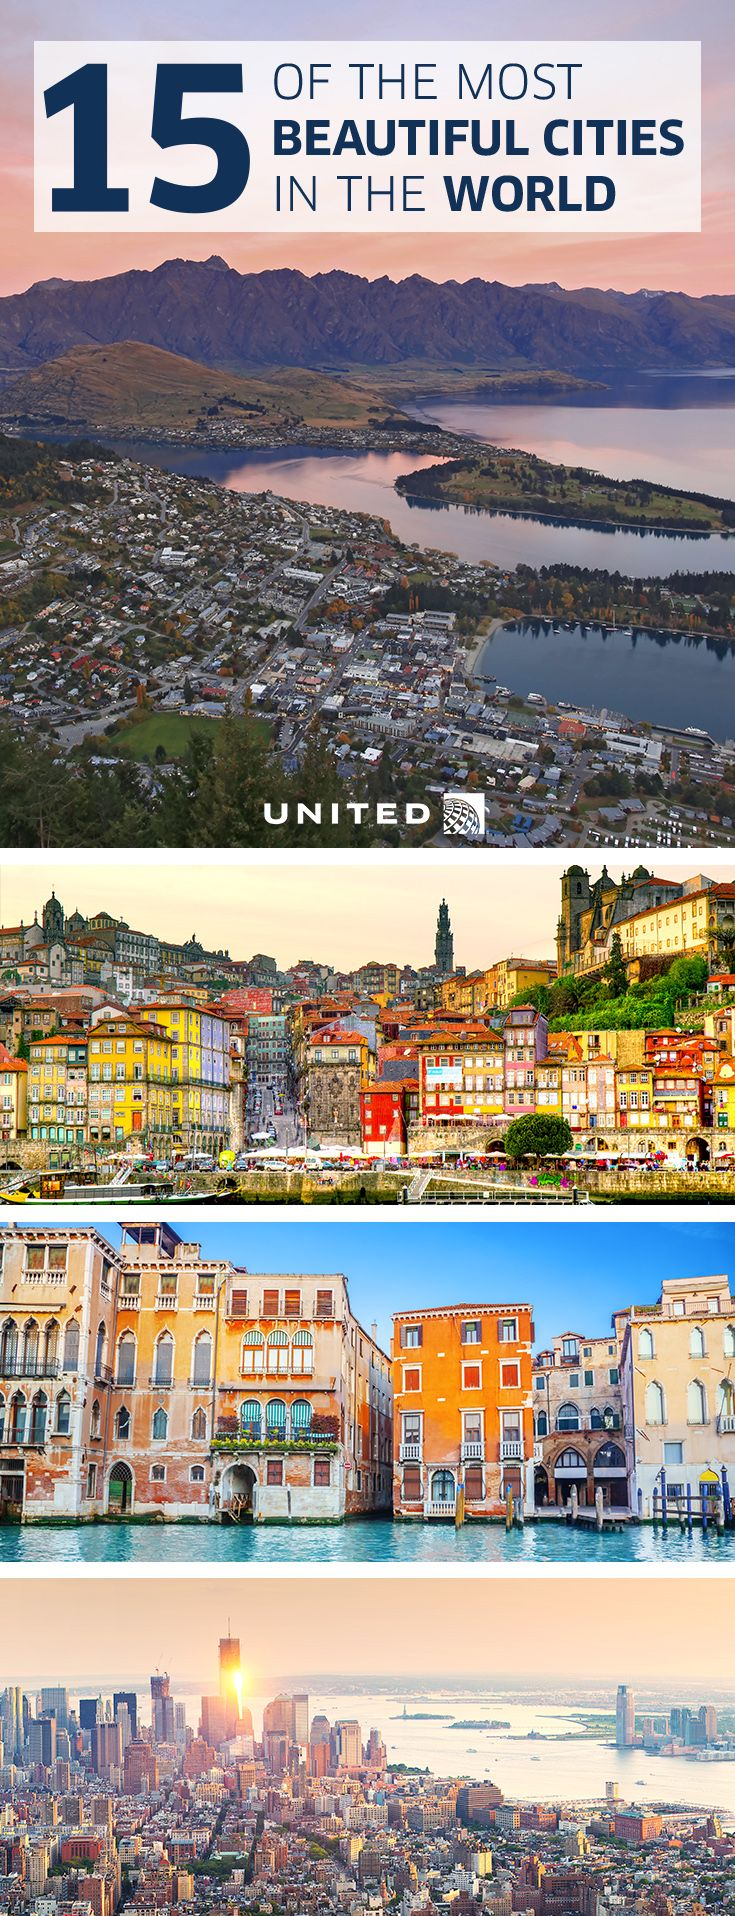 15 of the most beautiful cities in the world    Queenstown, New Zealand   Porto, Portugal   Venice, Italy   Manhattan, NY